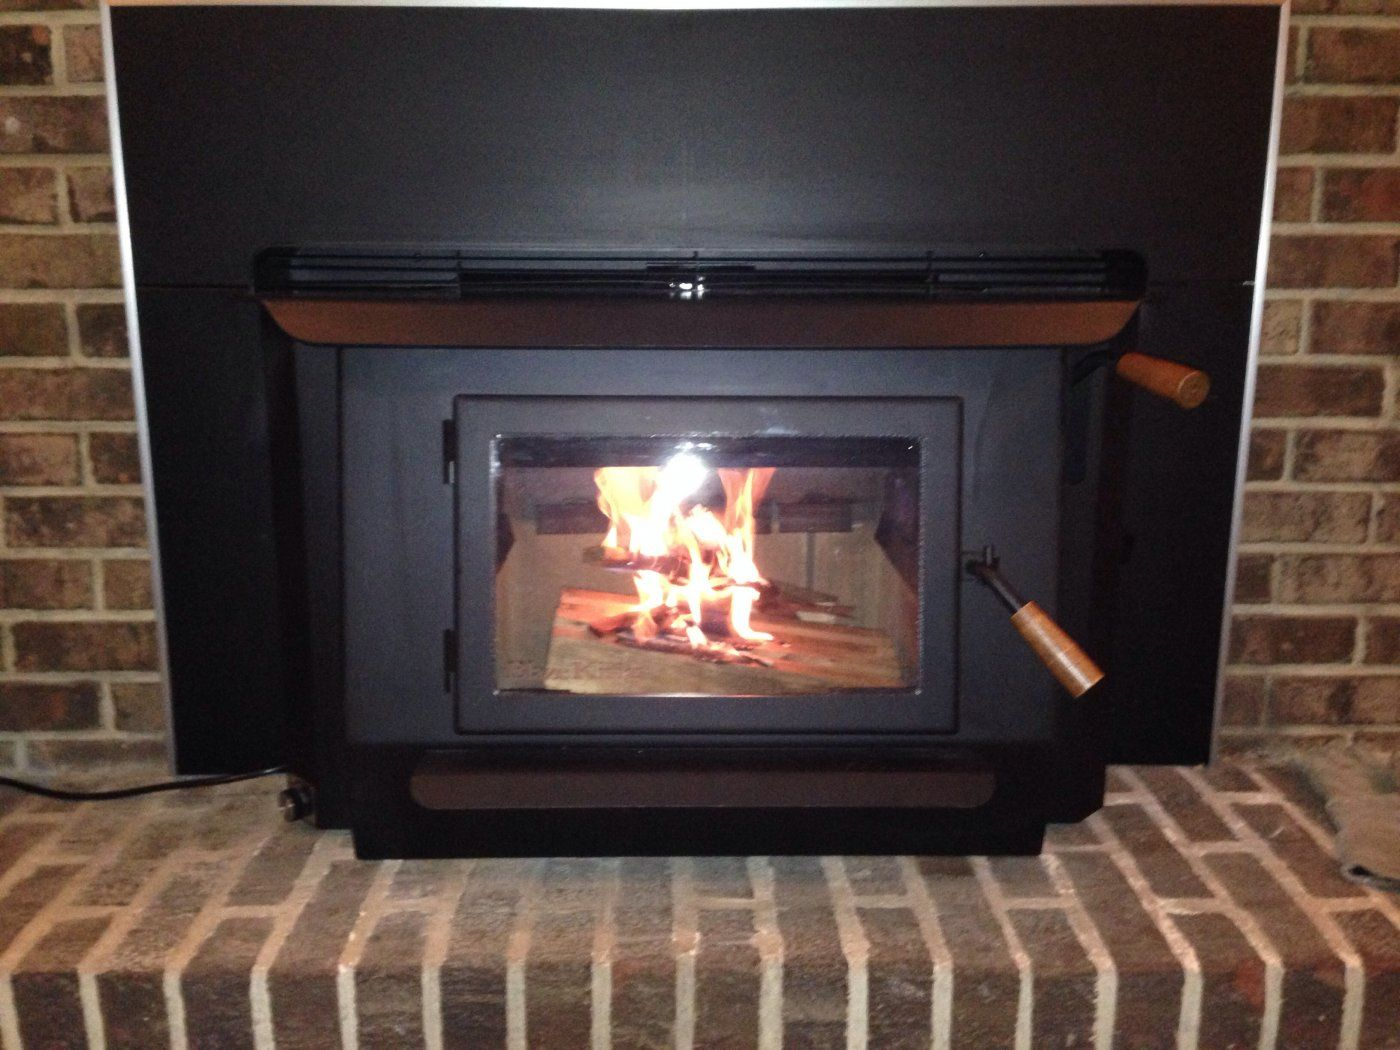 My new blaze king princess insert install | Hearth.com Forums Home